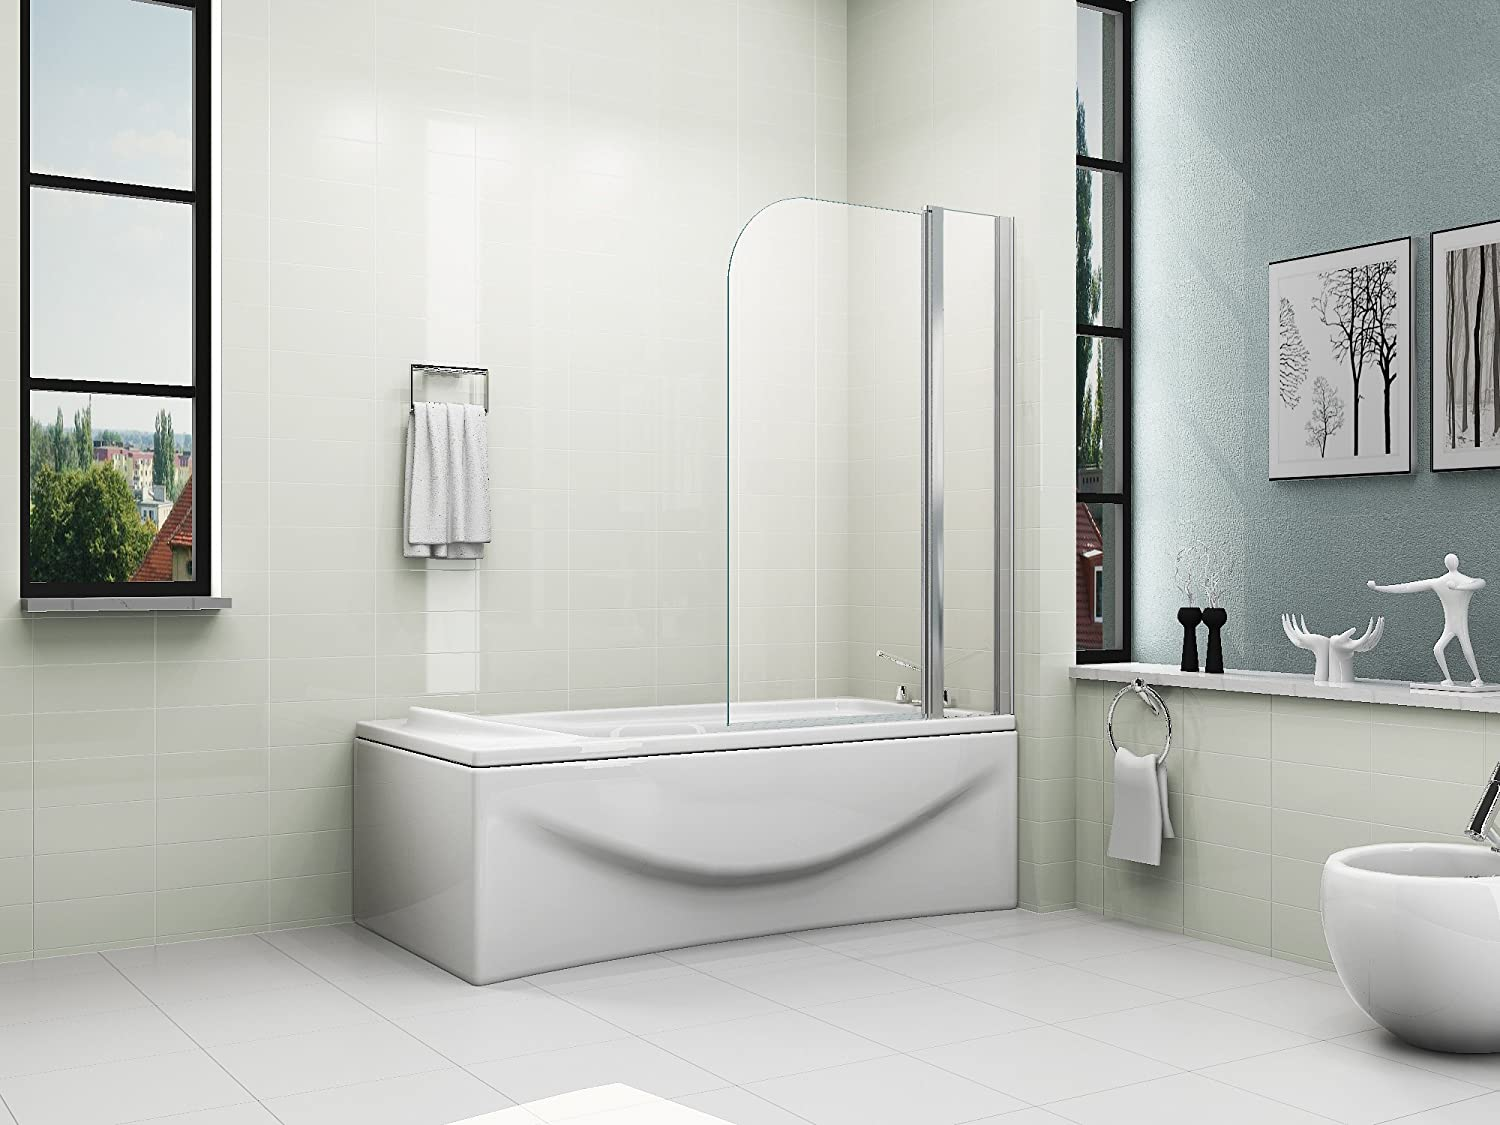 HNNHOME 180° Pivote Panel Doble Pantalla Ducha de Baño Vidrio 6mm: Amazon.es: Hogar